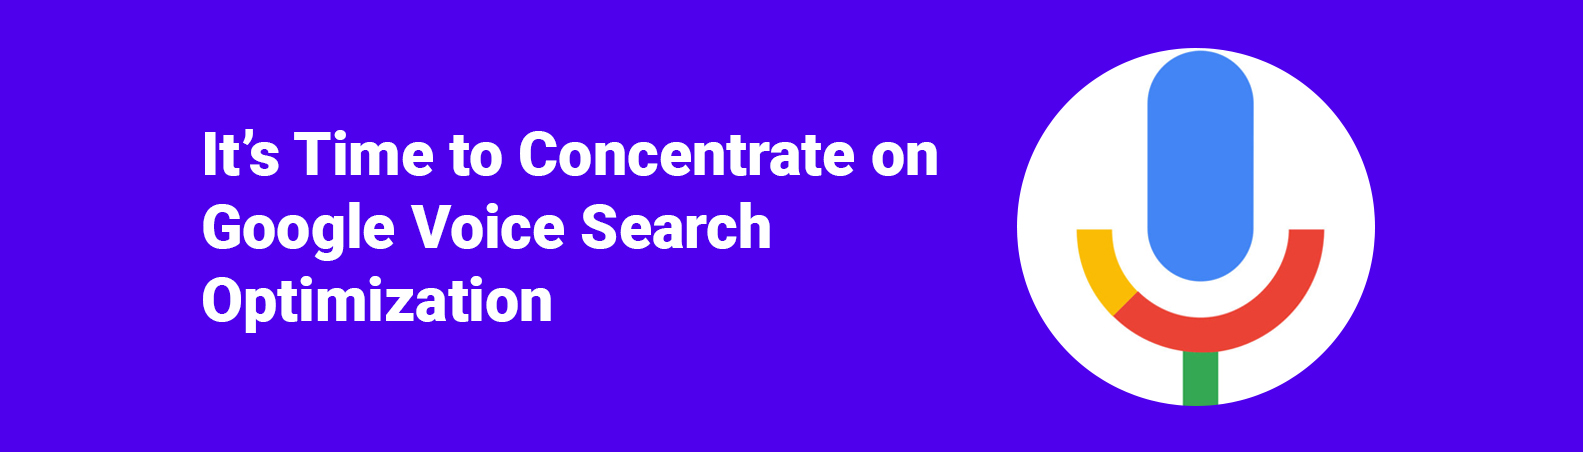 It's Time to Concentrate on Google Voice Search Optimization